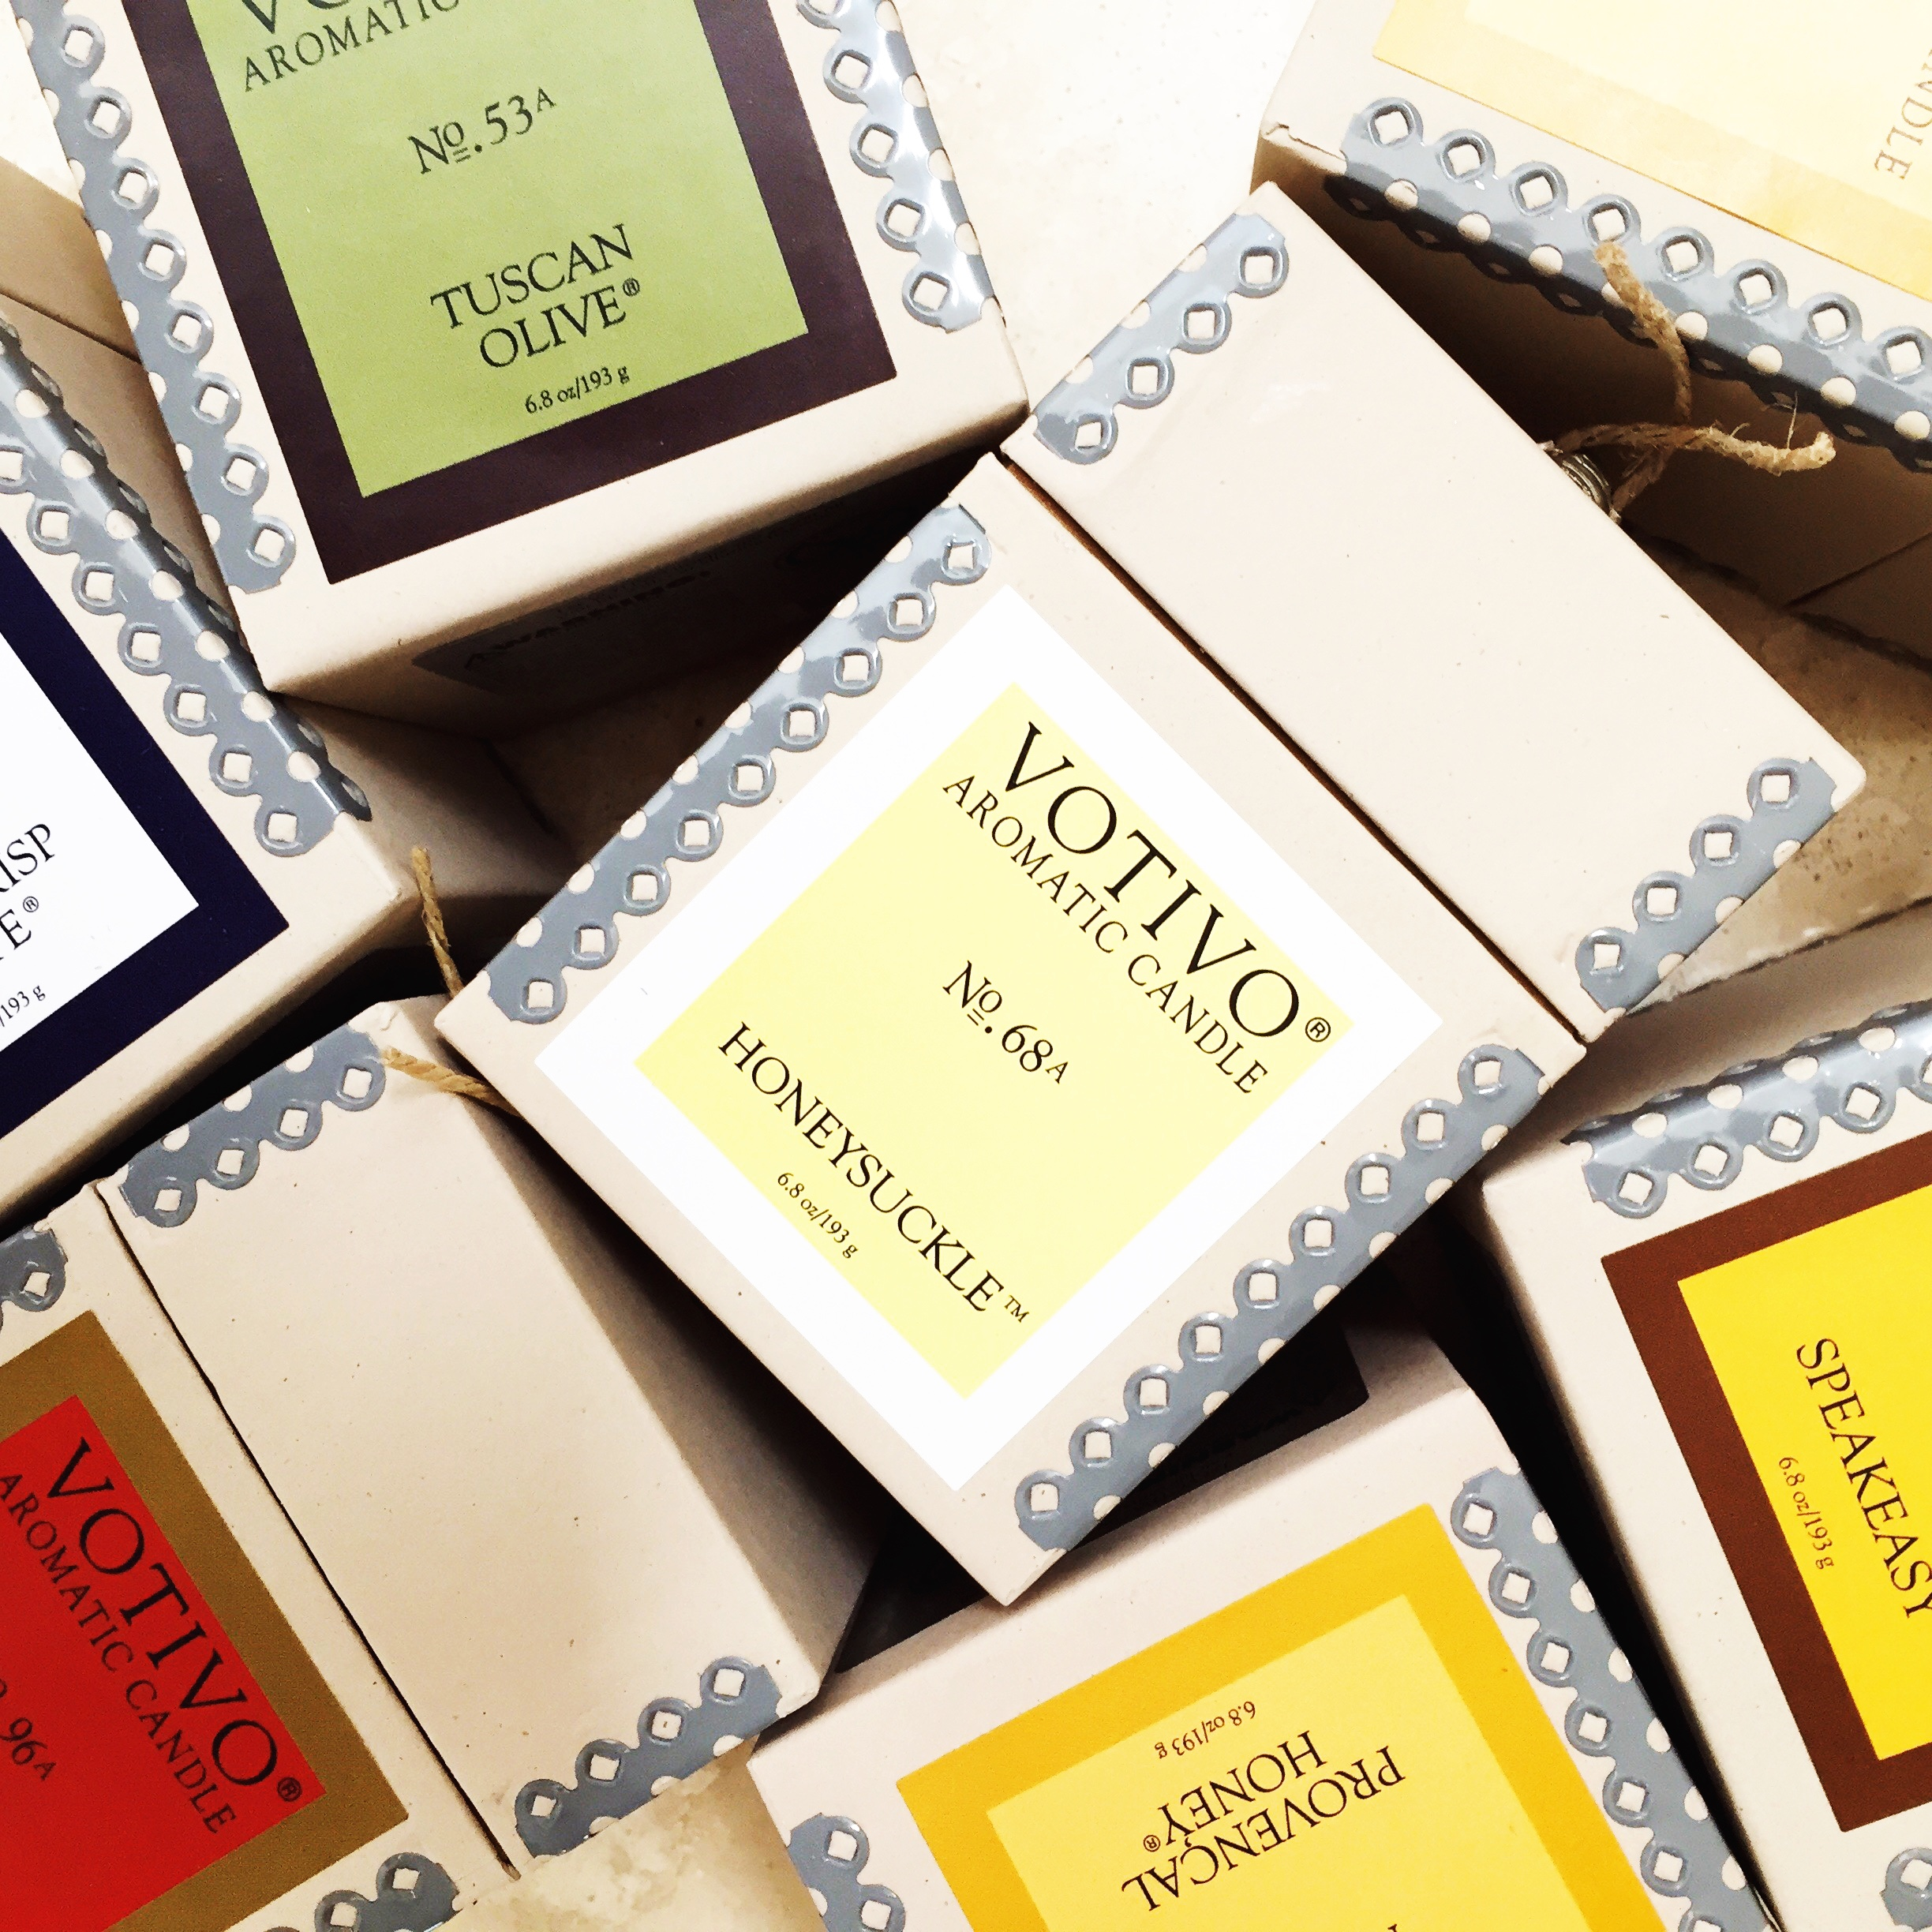 some of my favorite scents from my favorite candle supplier,  Votivo